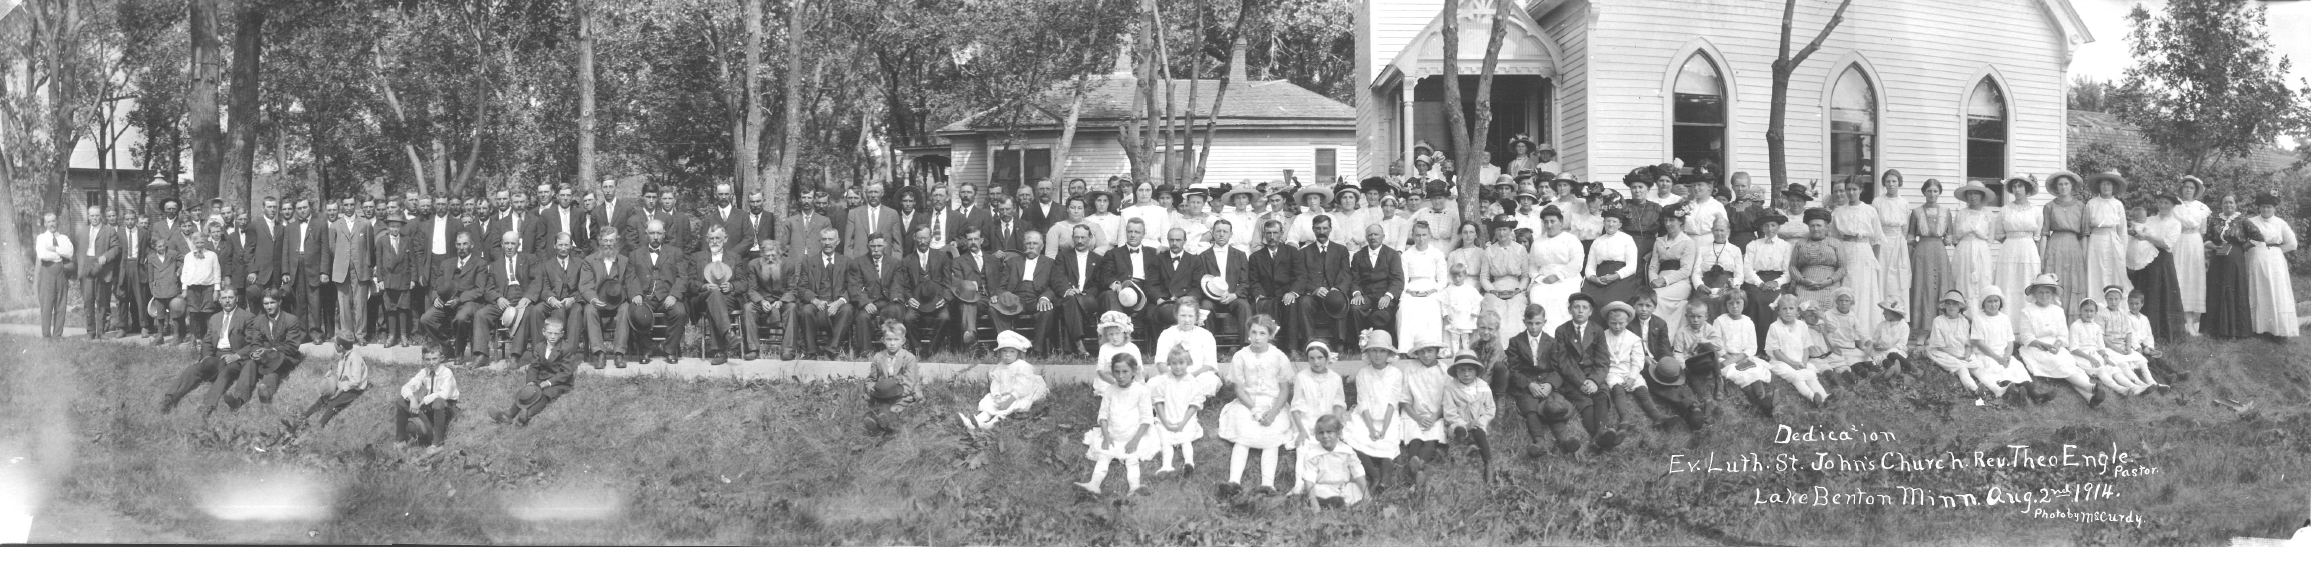 Members gather to dedicate the old Church building in 1914.